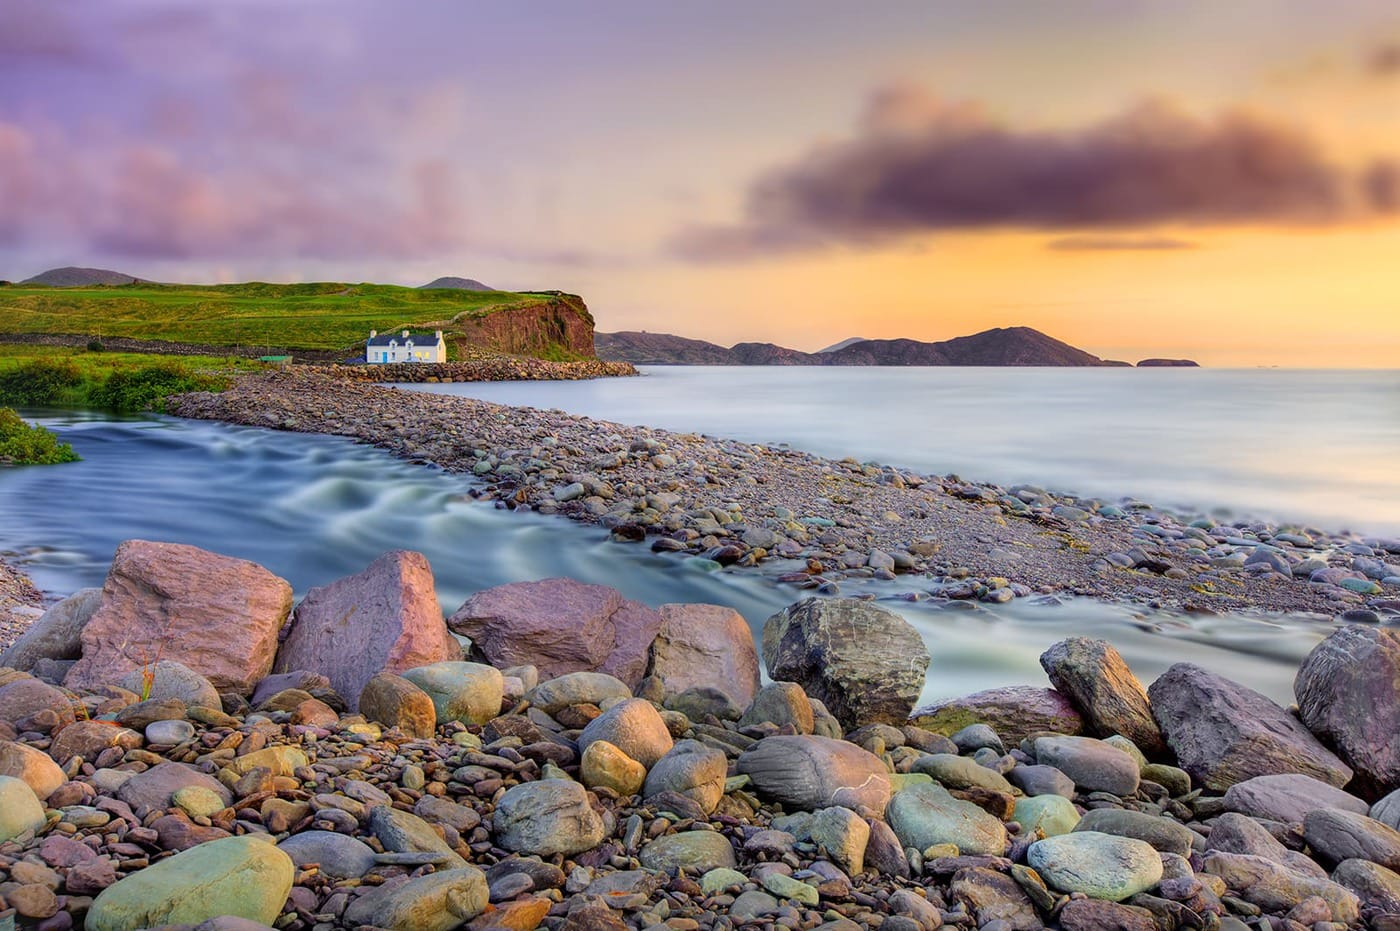 Waterville is a town in County Kerry, Ireland on the Iverah Peninsula. The town is sited on a narrow isthmus, with lough Currane on the est side and Ballinskelligs Bay on the west. View on Cottage and Skellig Bay Golfcourse during sunset